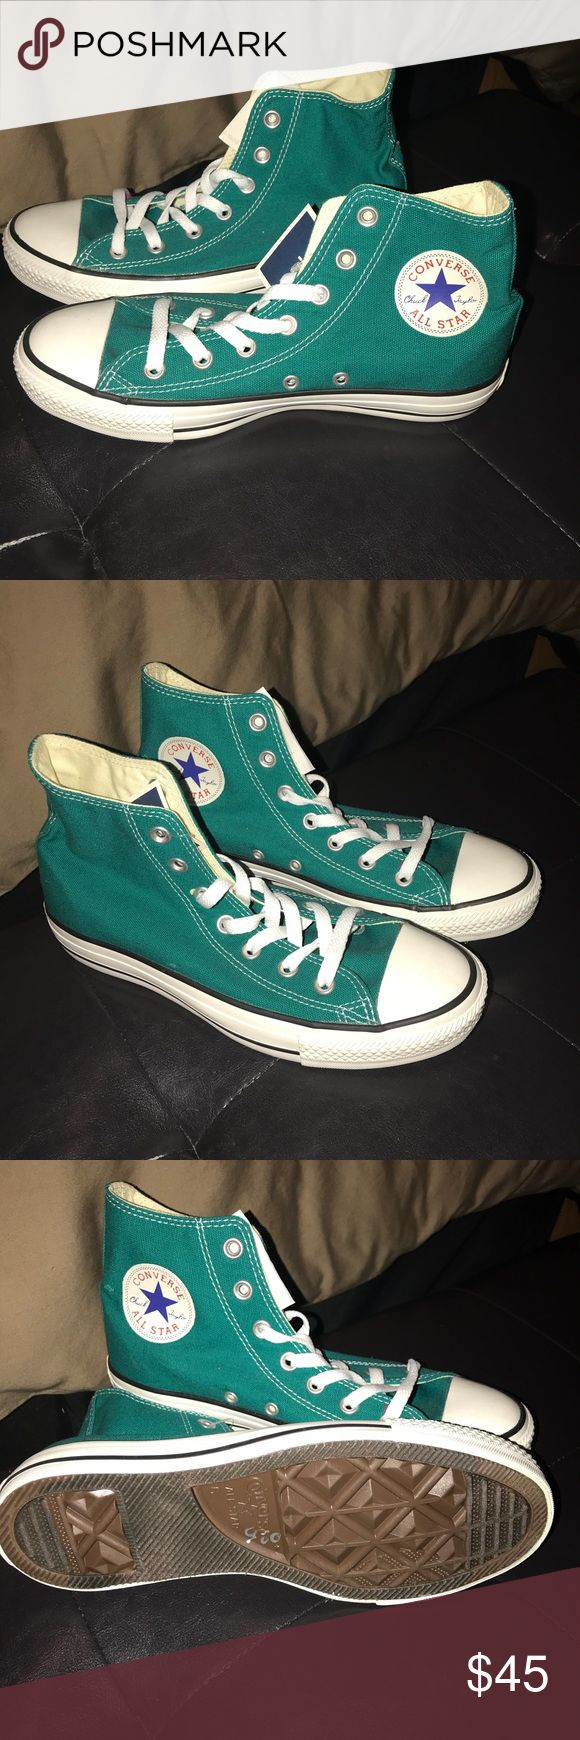 Sneakers Brand new Teal Converse Sneakers. The color on these are absolutely beautiful. Converse are Unisex these are a size 8 in Women's and a Size 6 in Men's.  Never worn Converse Shoes Sneakers